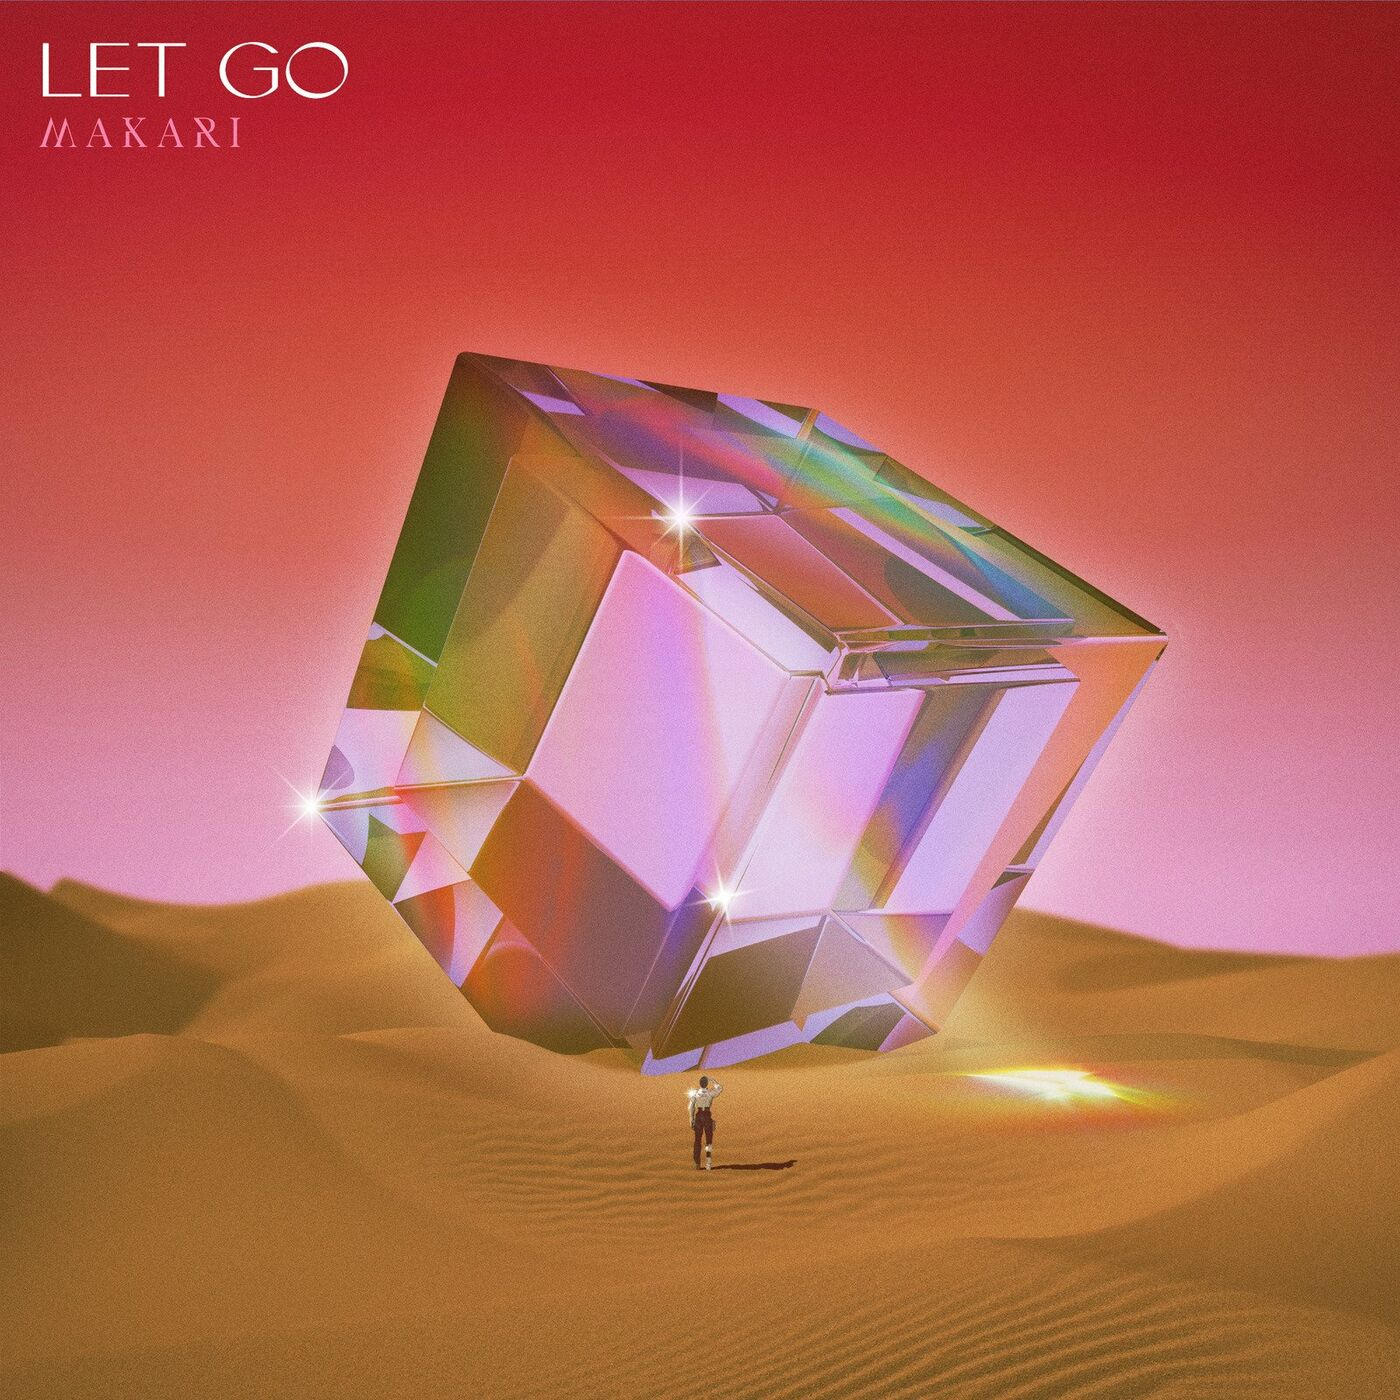 Makari - Let Go [single] (2020)